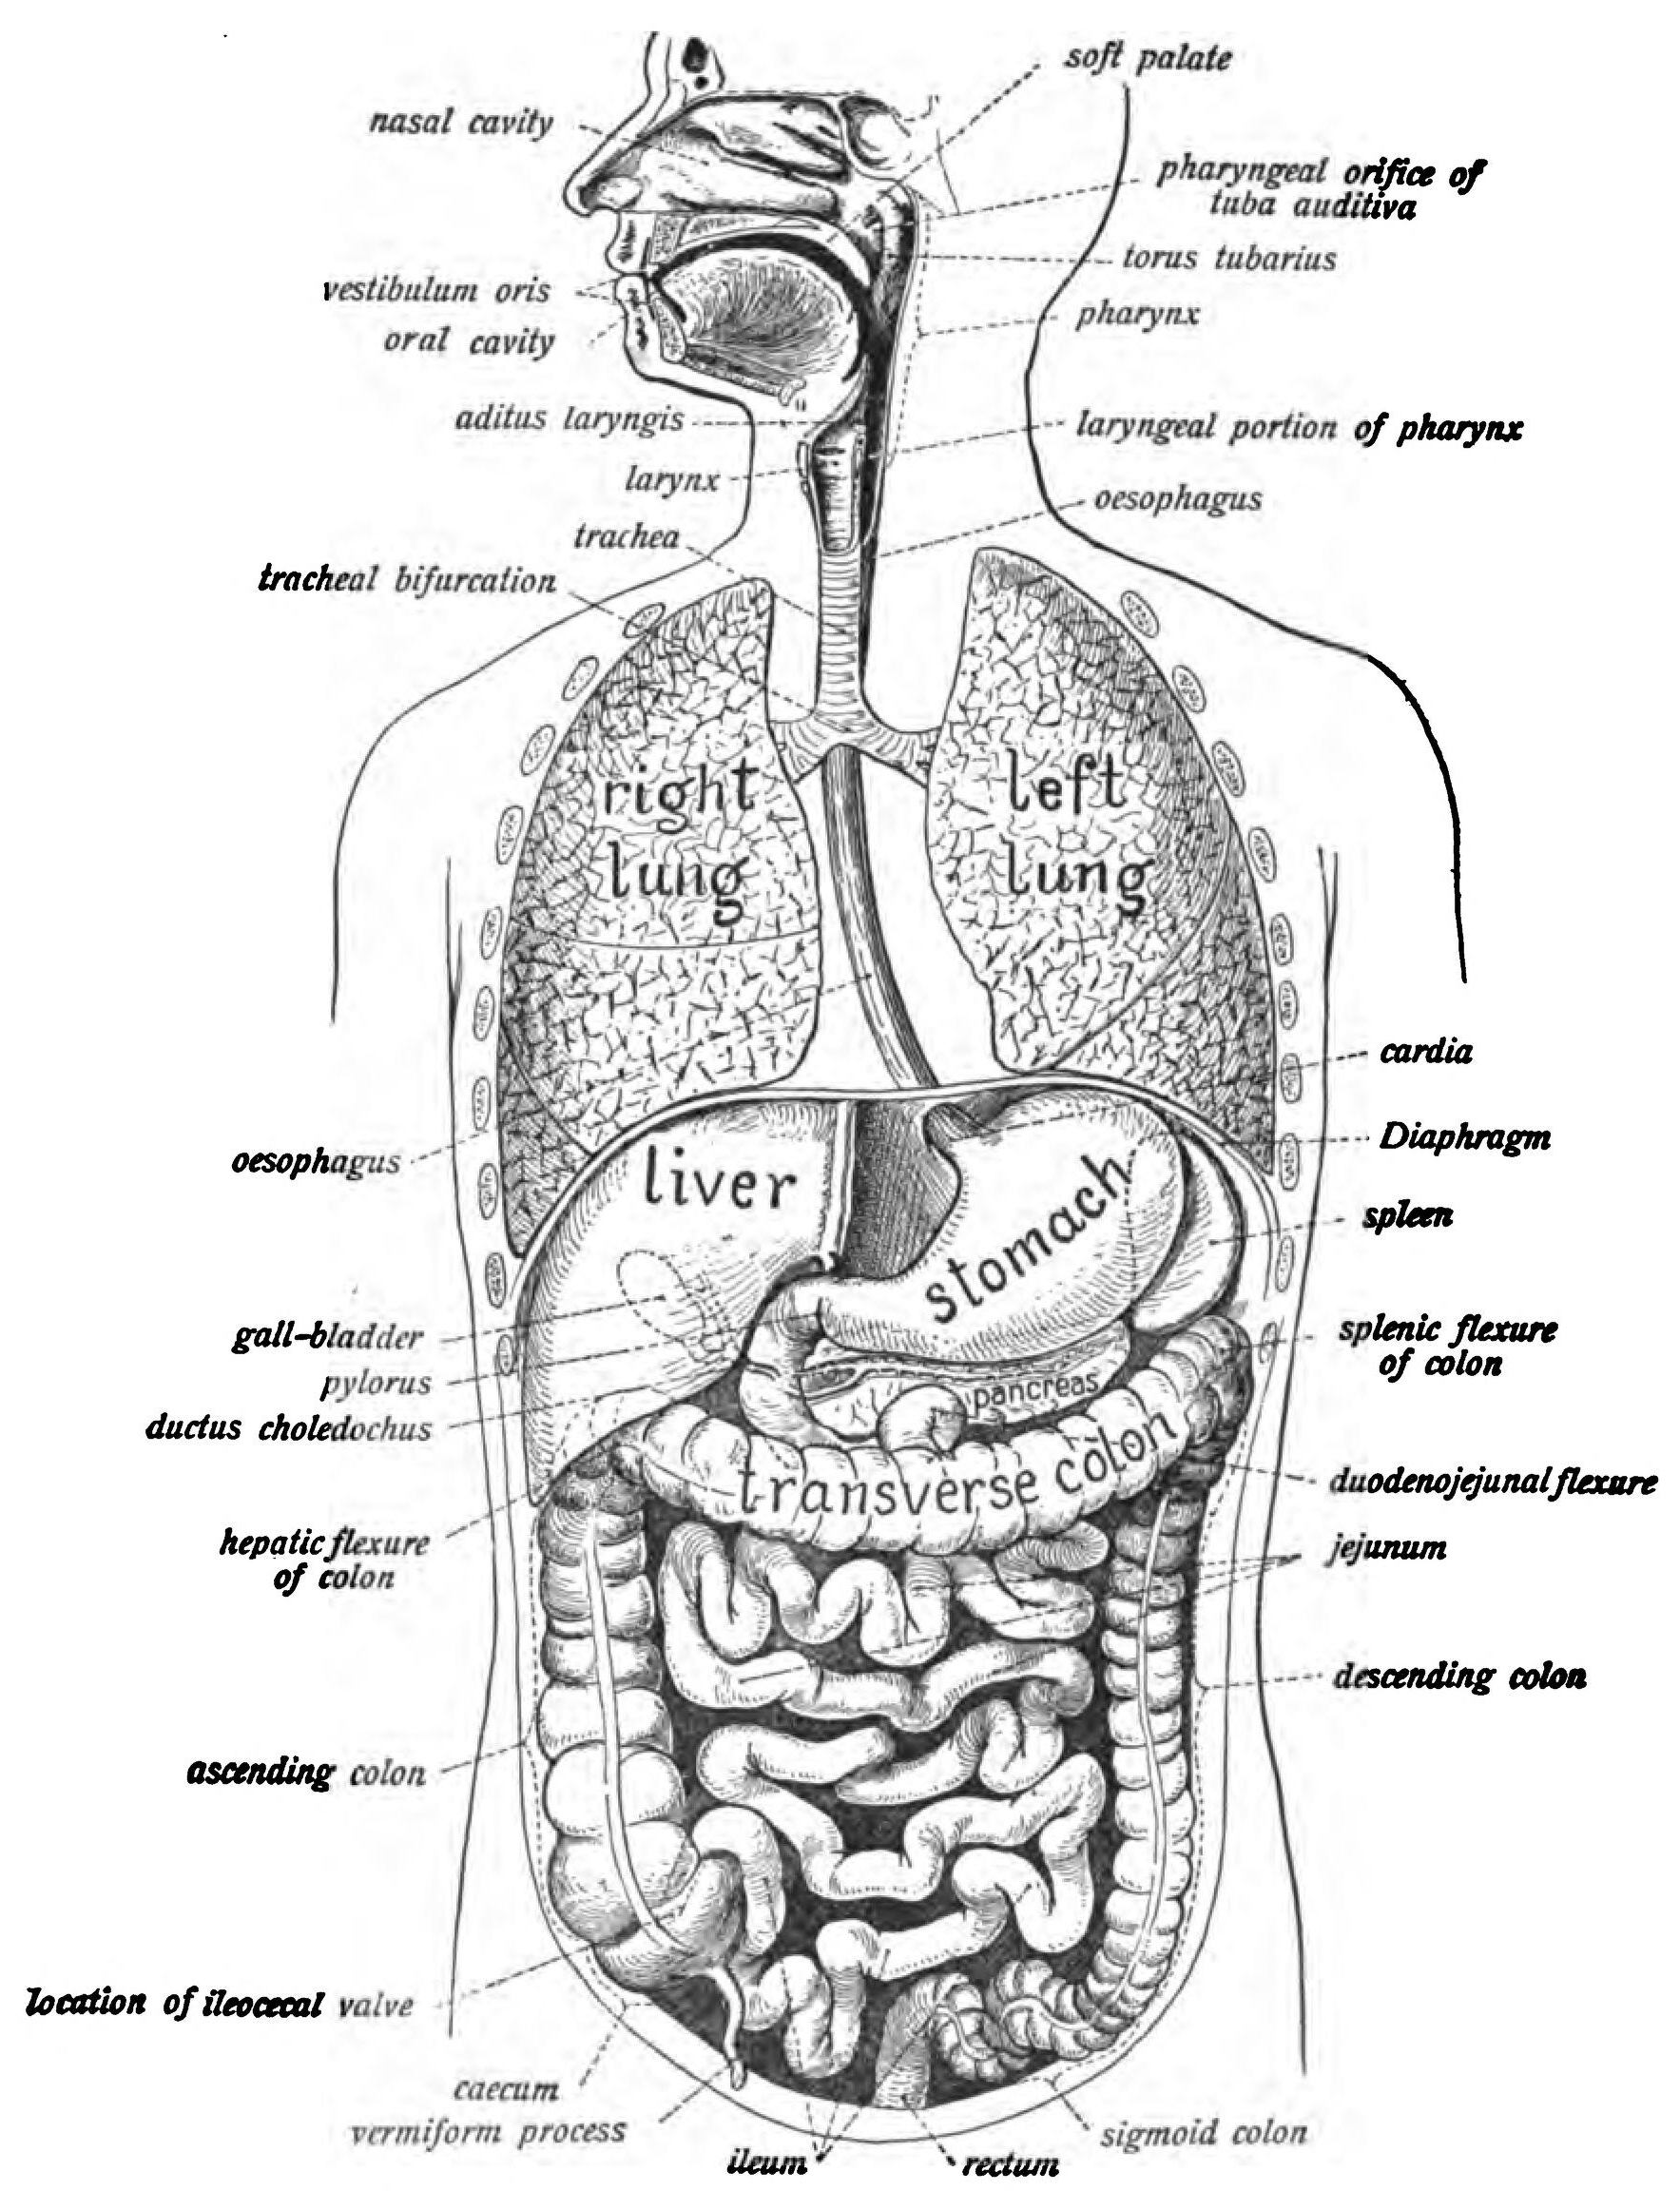 Diagram Of The Digestive System Human Digestive System Wikipedia